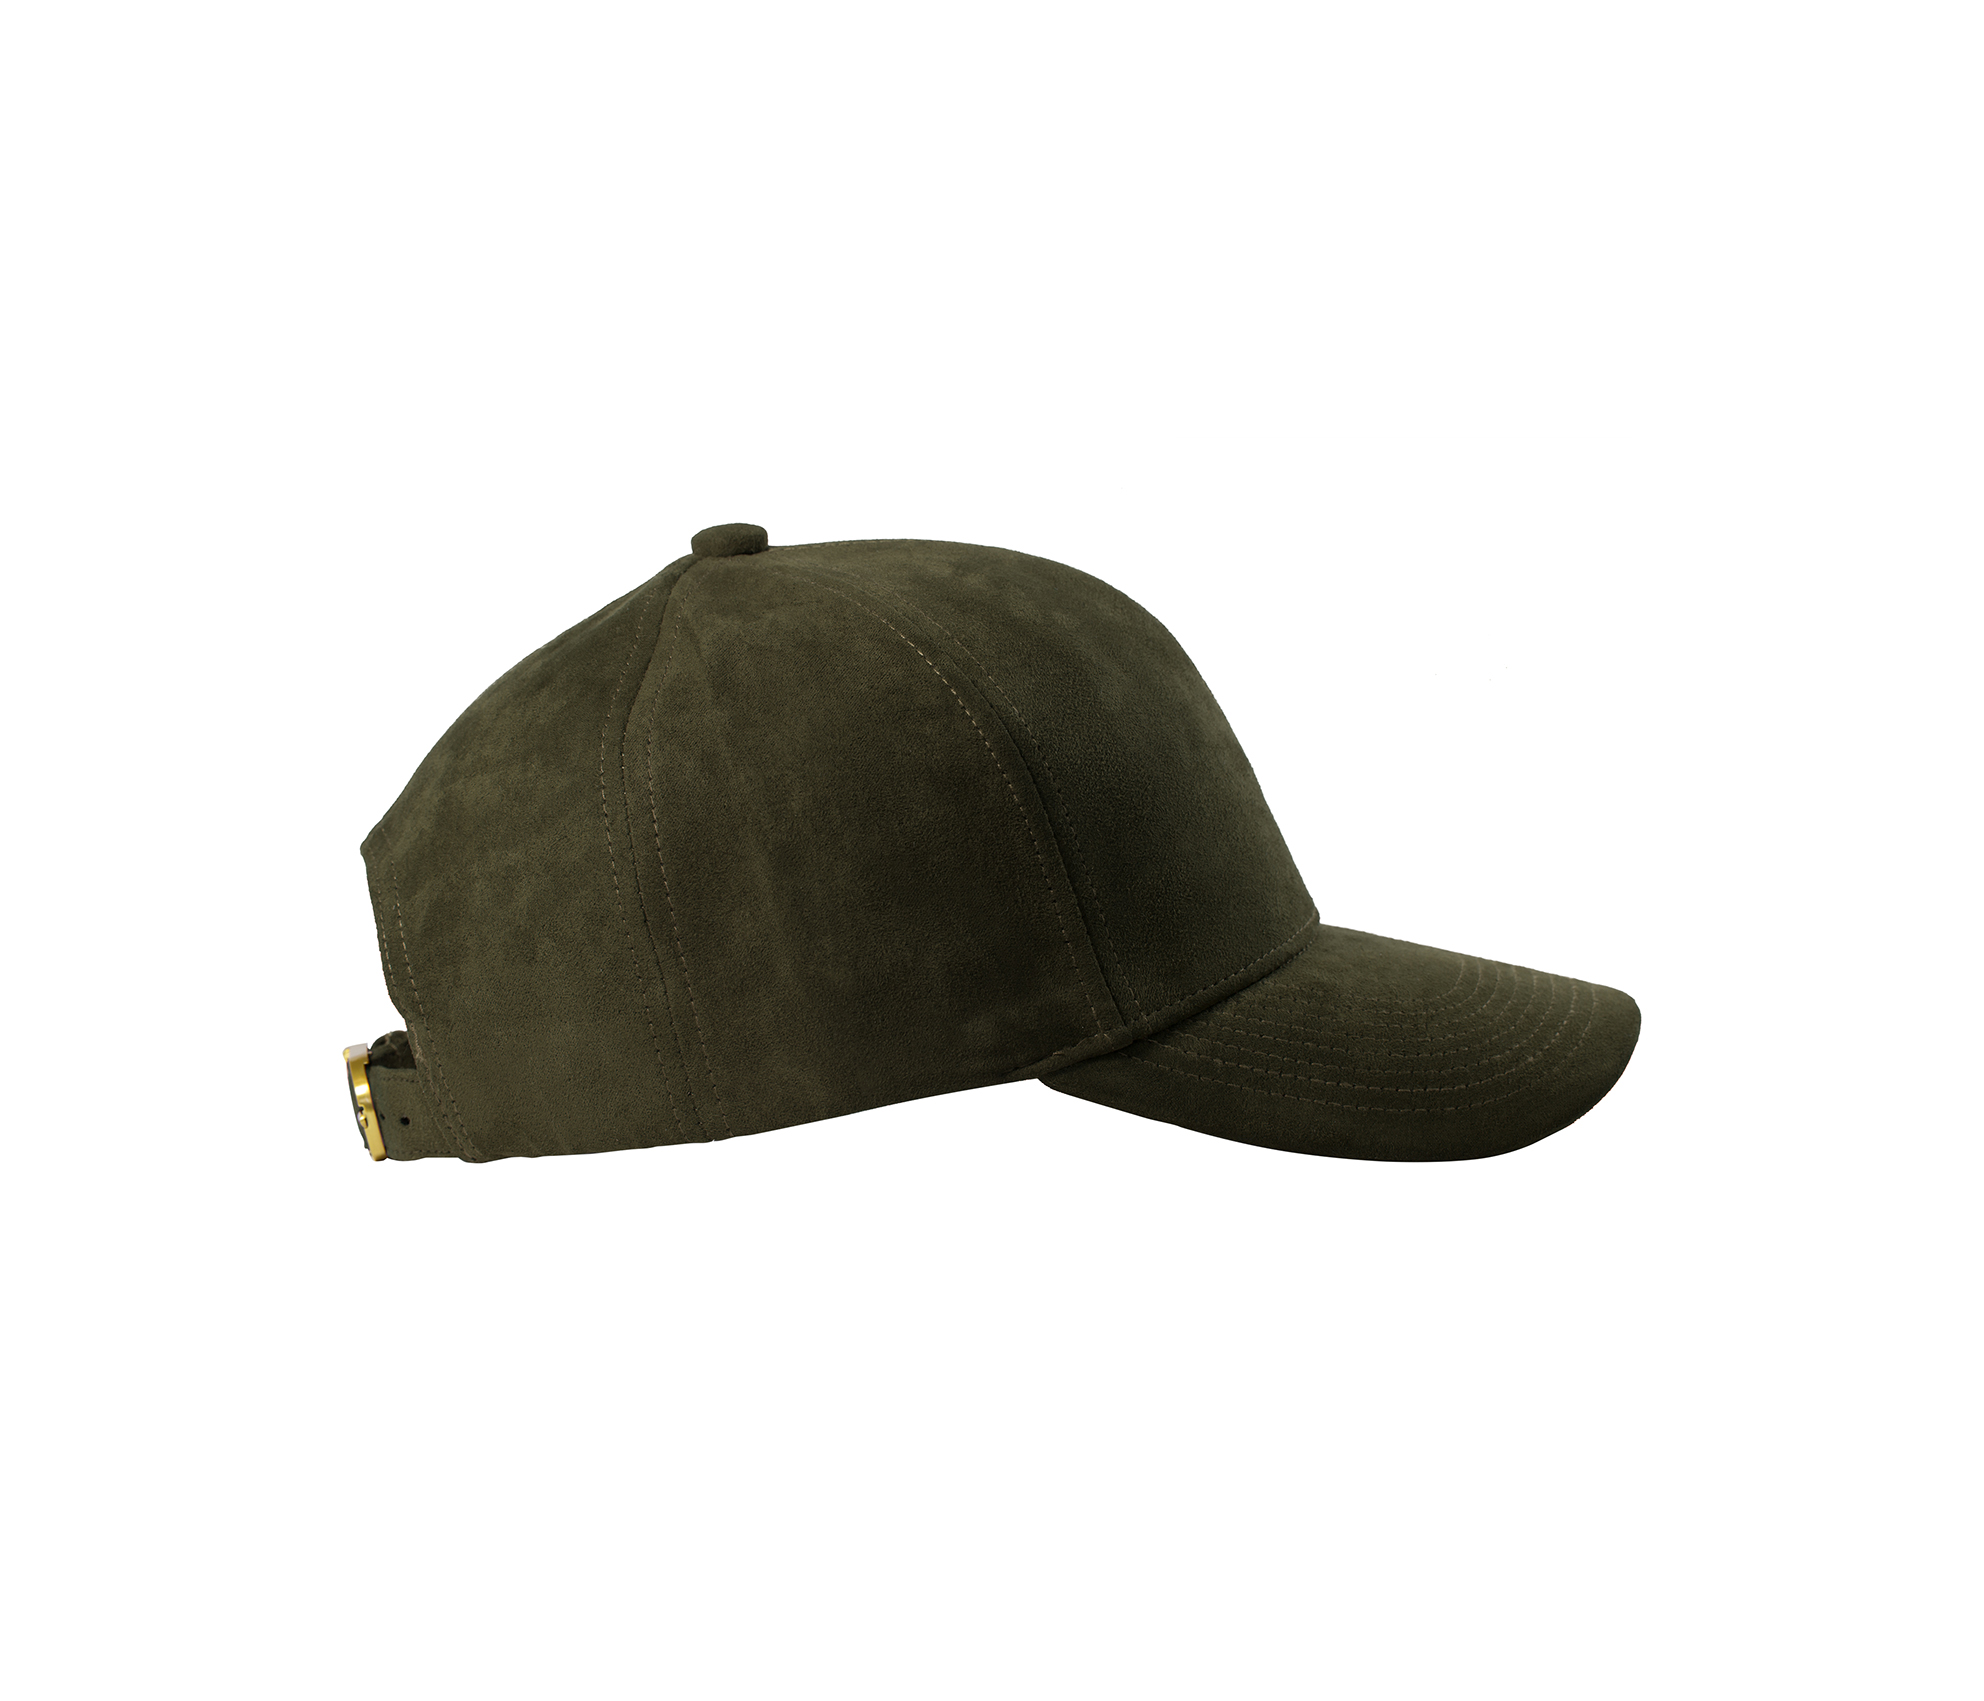 BASEBALL CAP OLIVE SUEDE GOLD SIDE